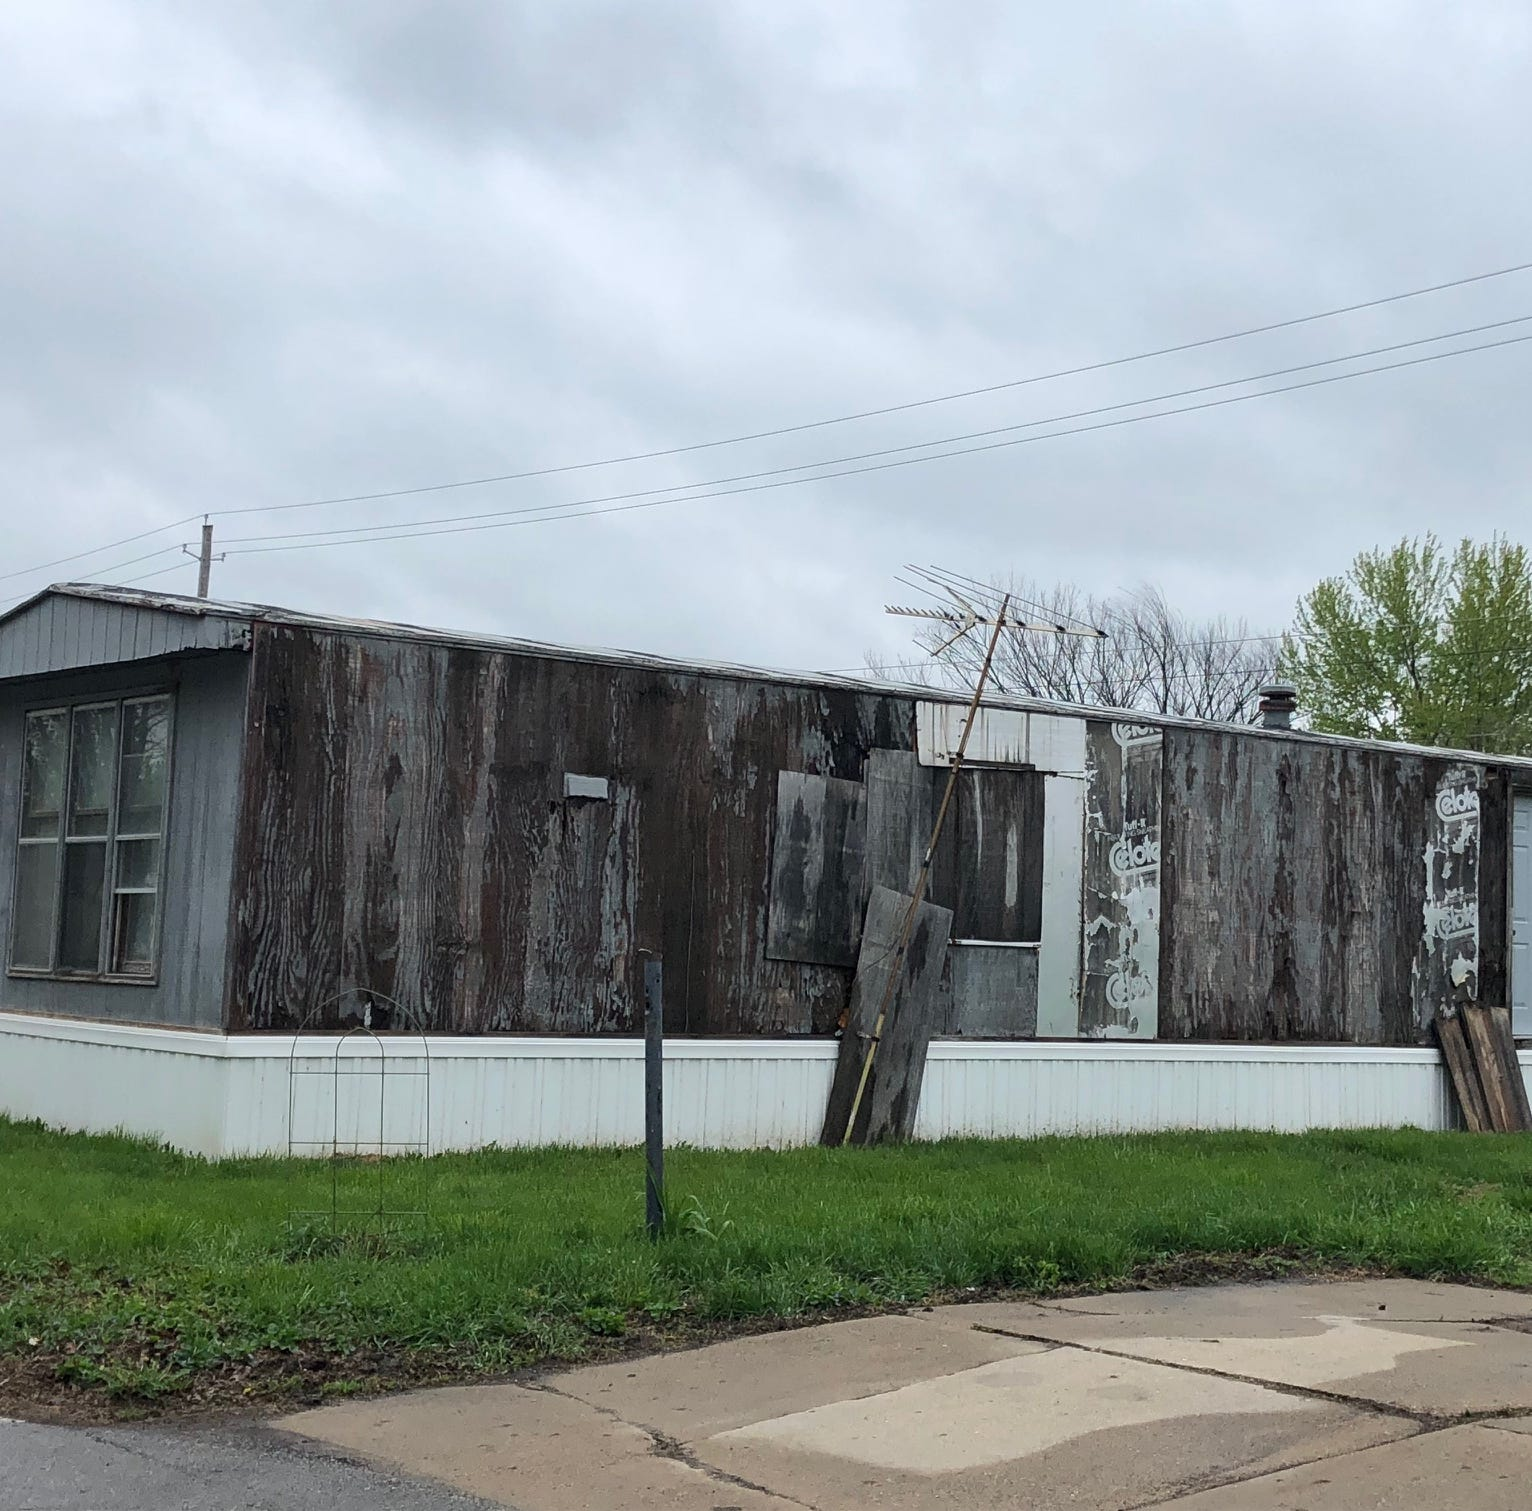 Investor firm that hiked lot rents at Iowa mobile home parks is subject of complaints in other states